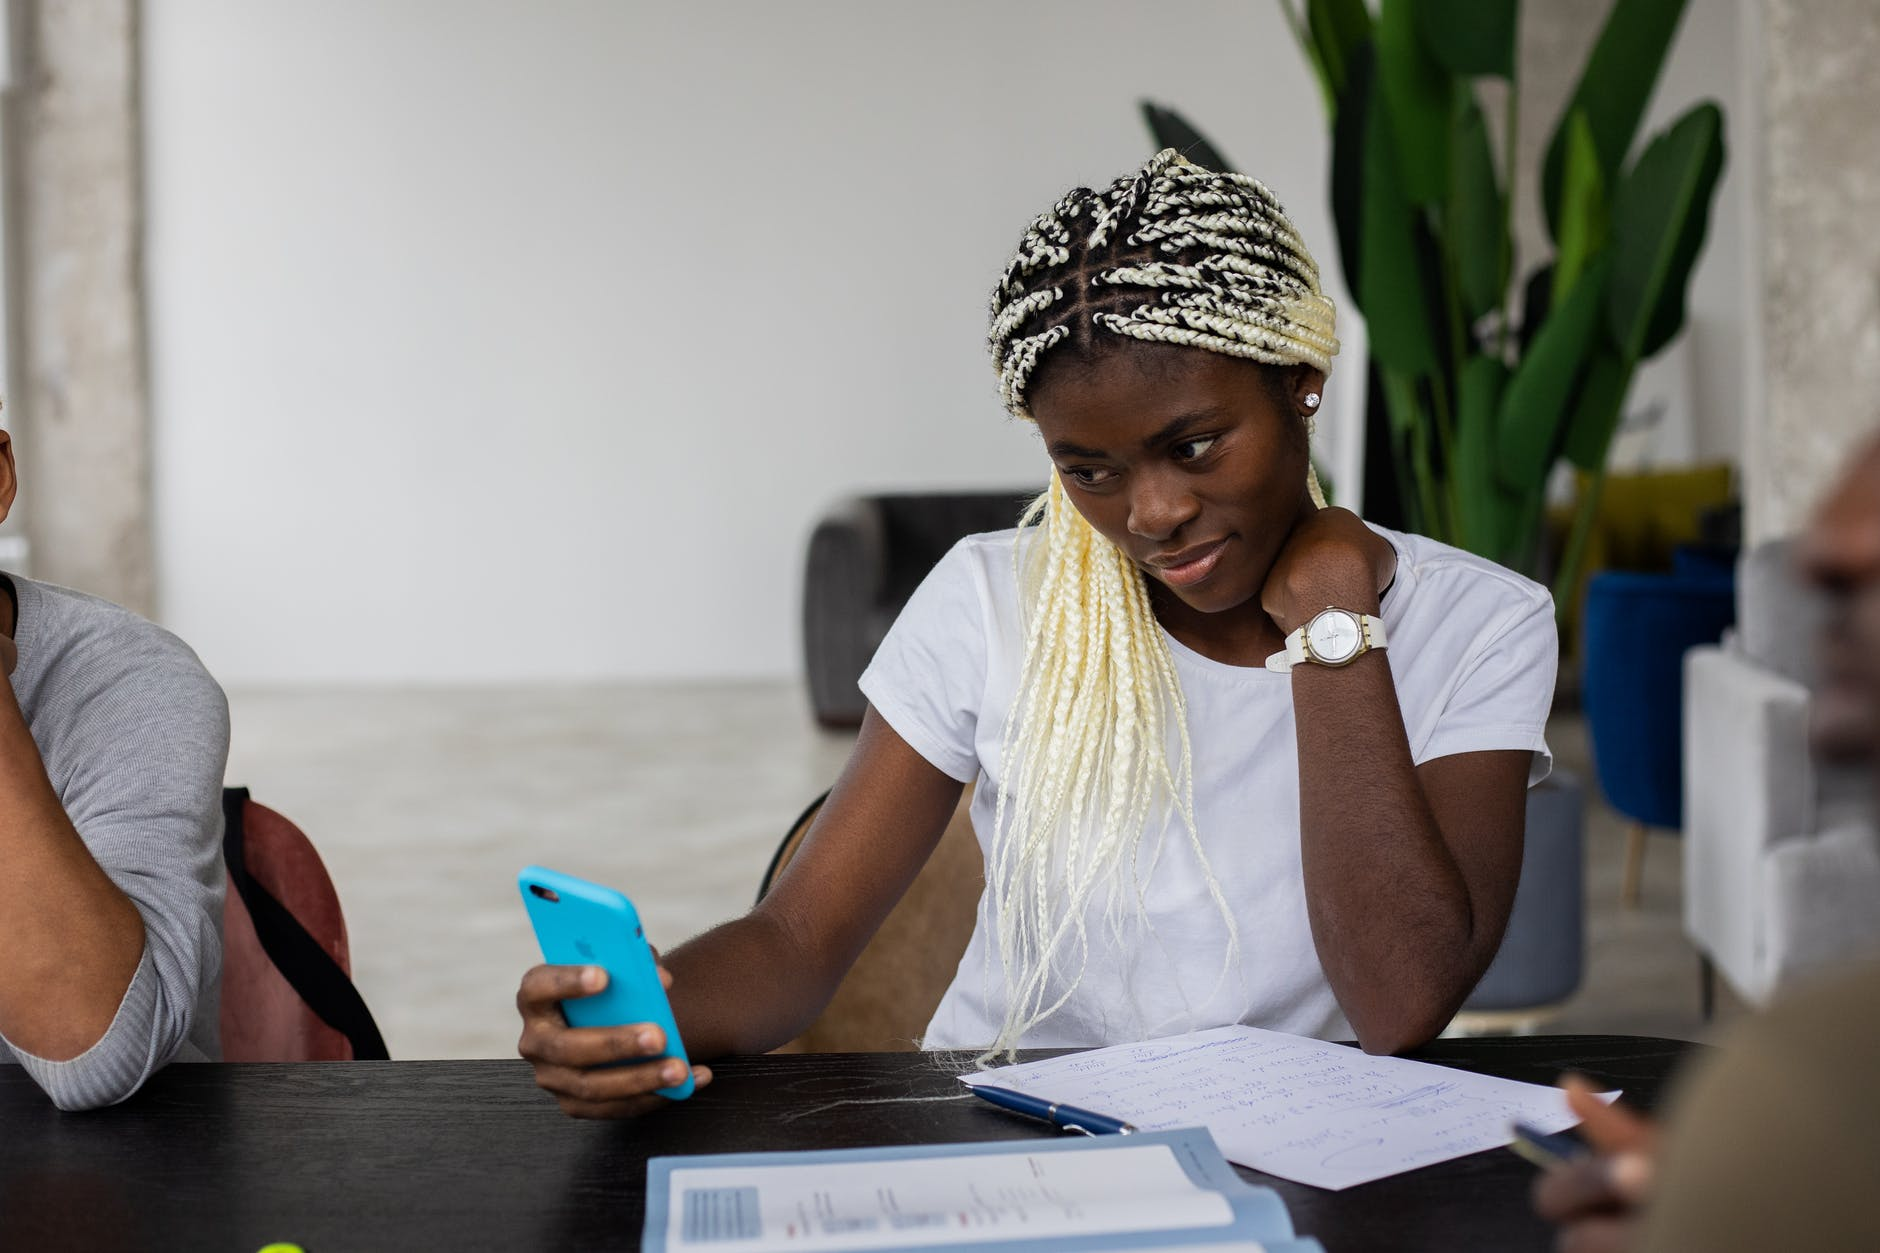 black woman using smartphone during teamwork with classmates